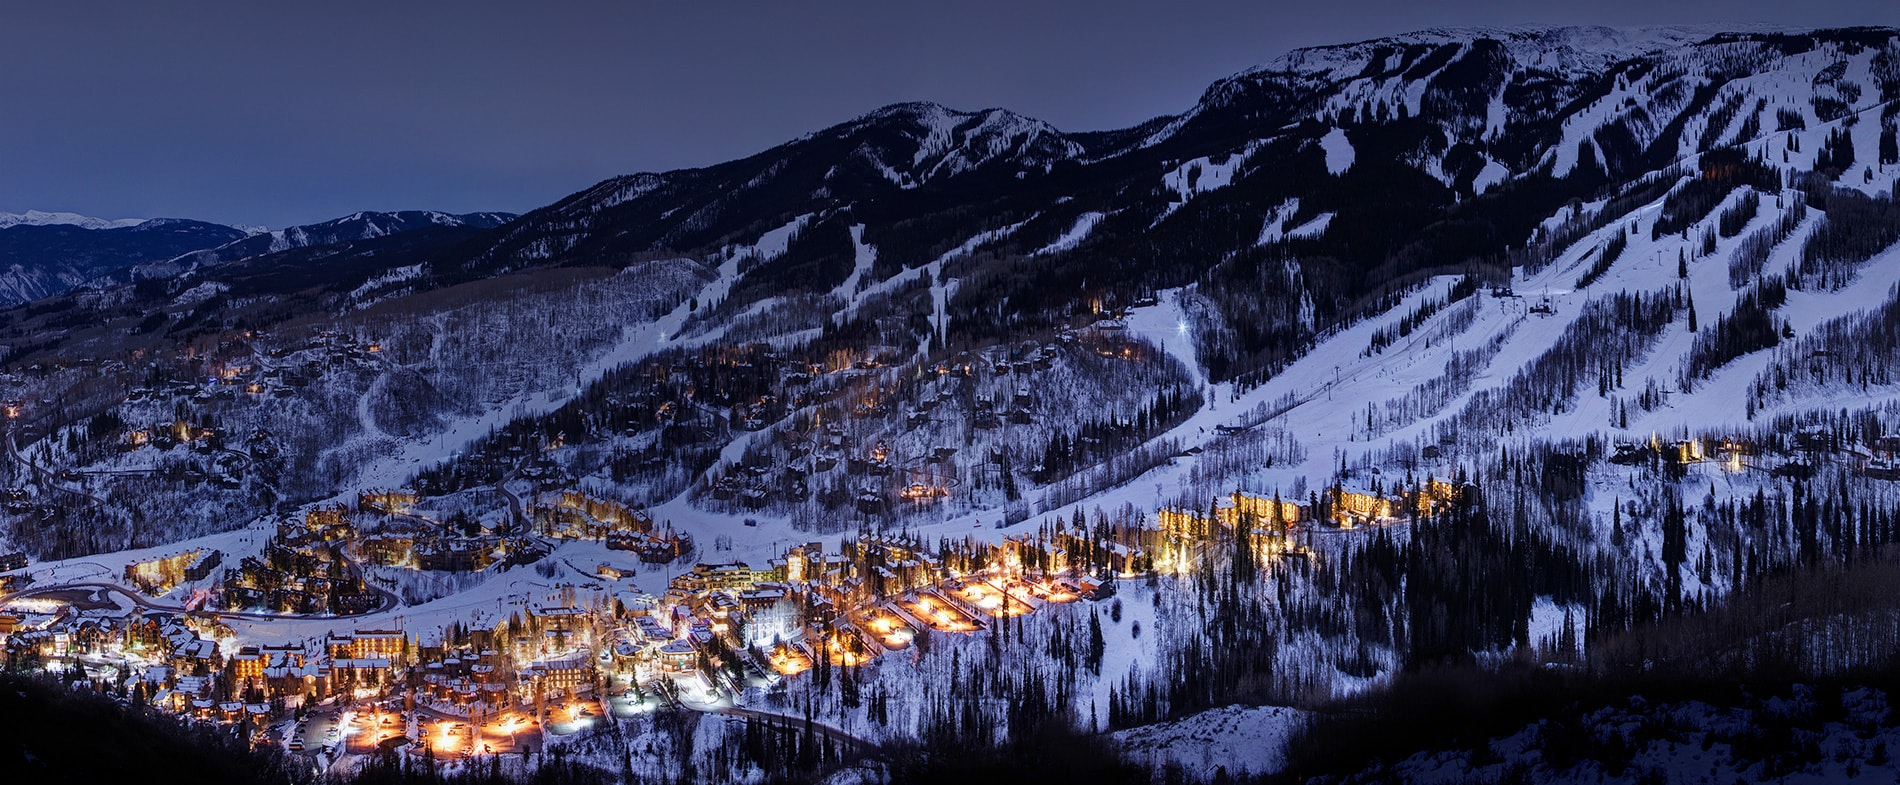 Aspen Snowmass Ski Vacation Deals